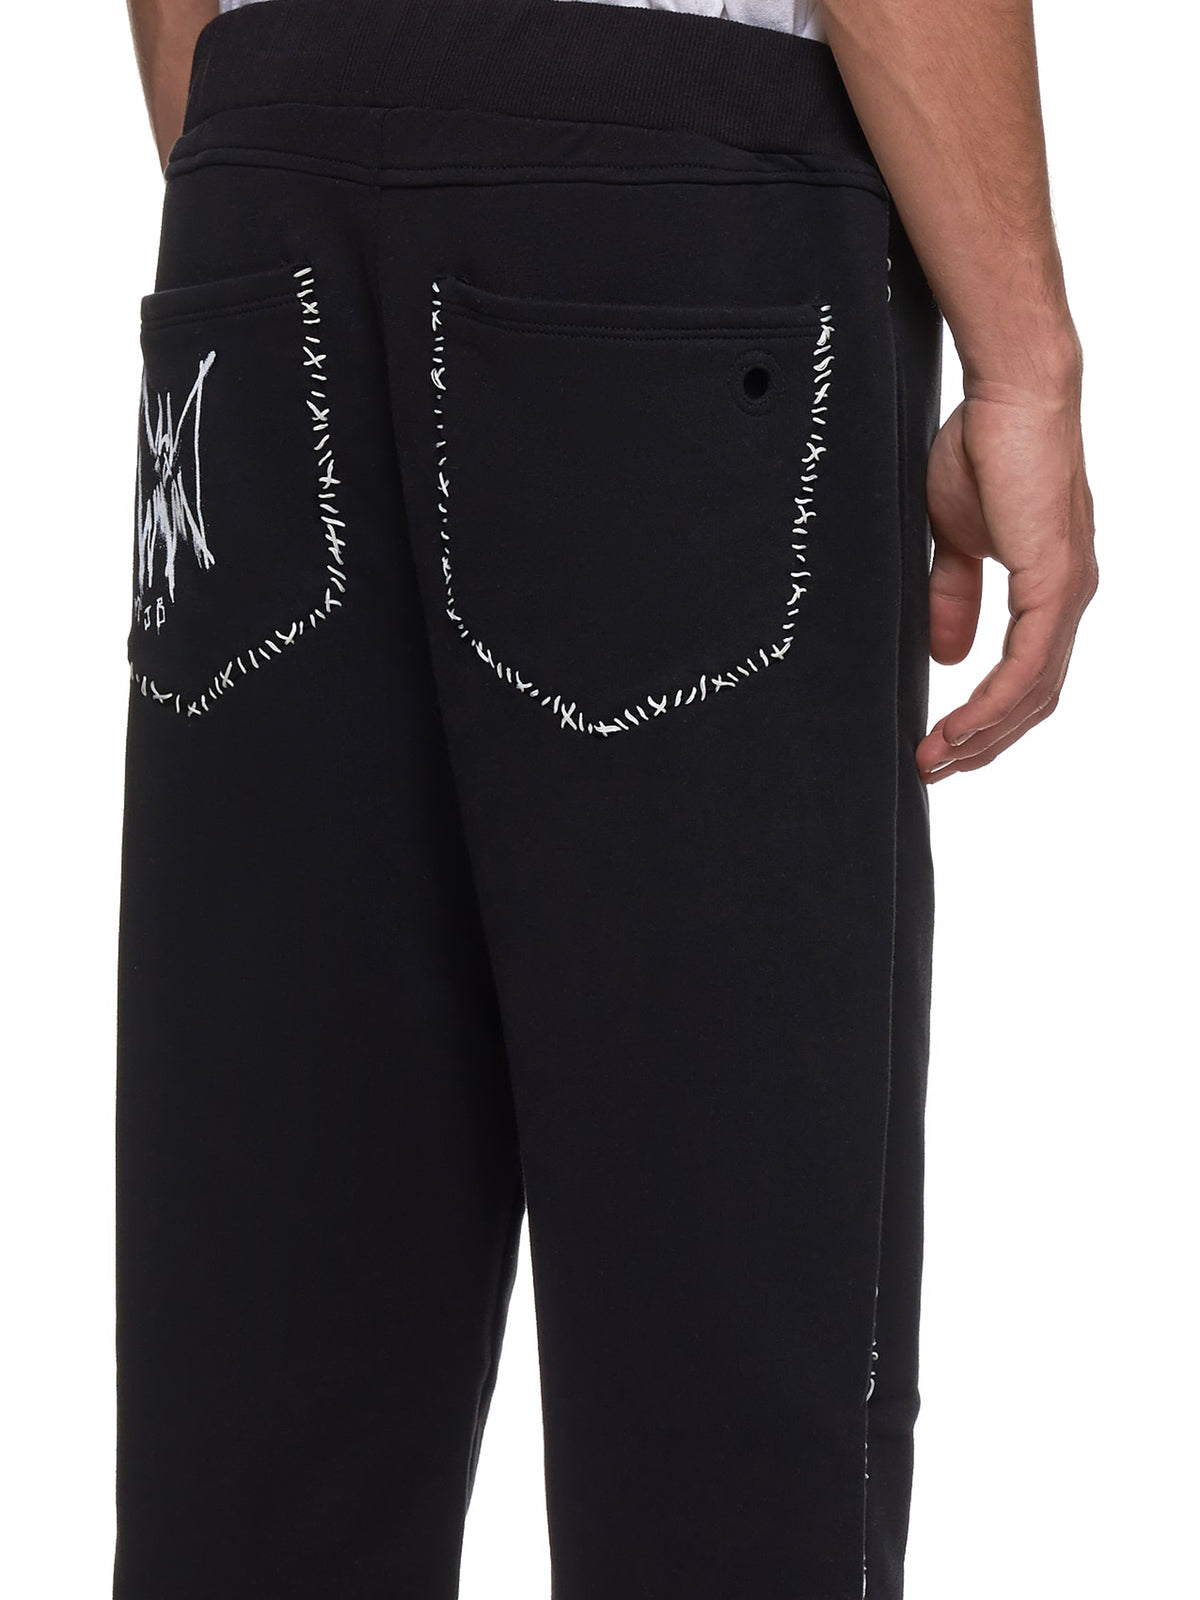 MJB (Marc Jacques Burton) Pants - Hlorenzo Detail 2